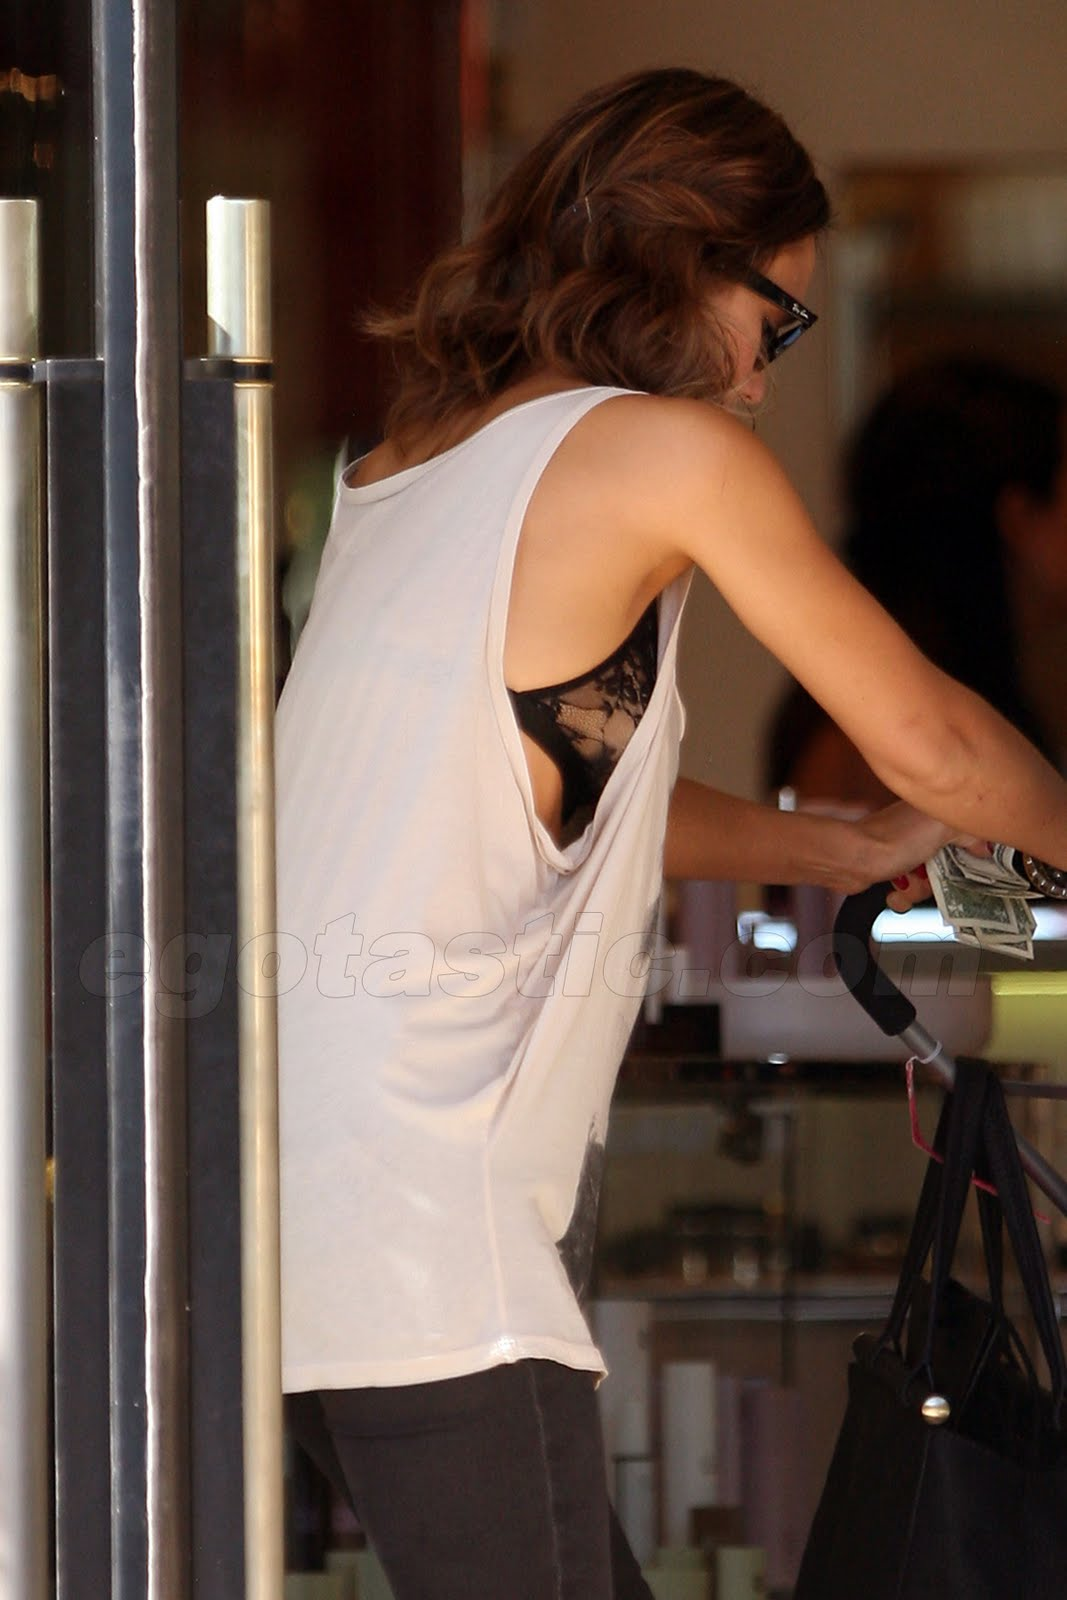 Can Jessica alba see through bra